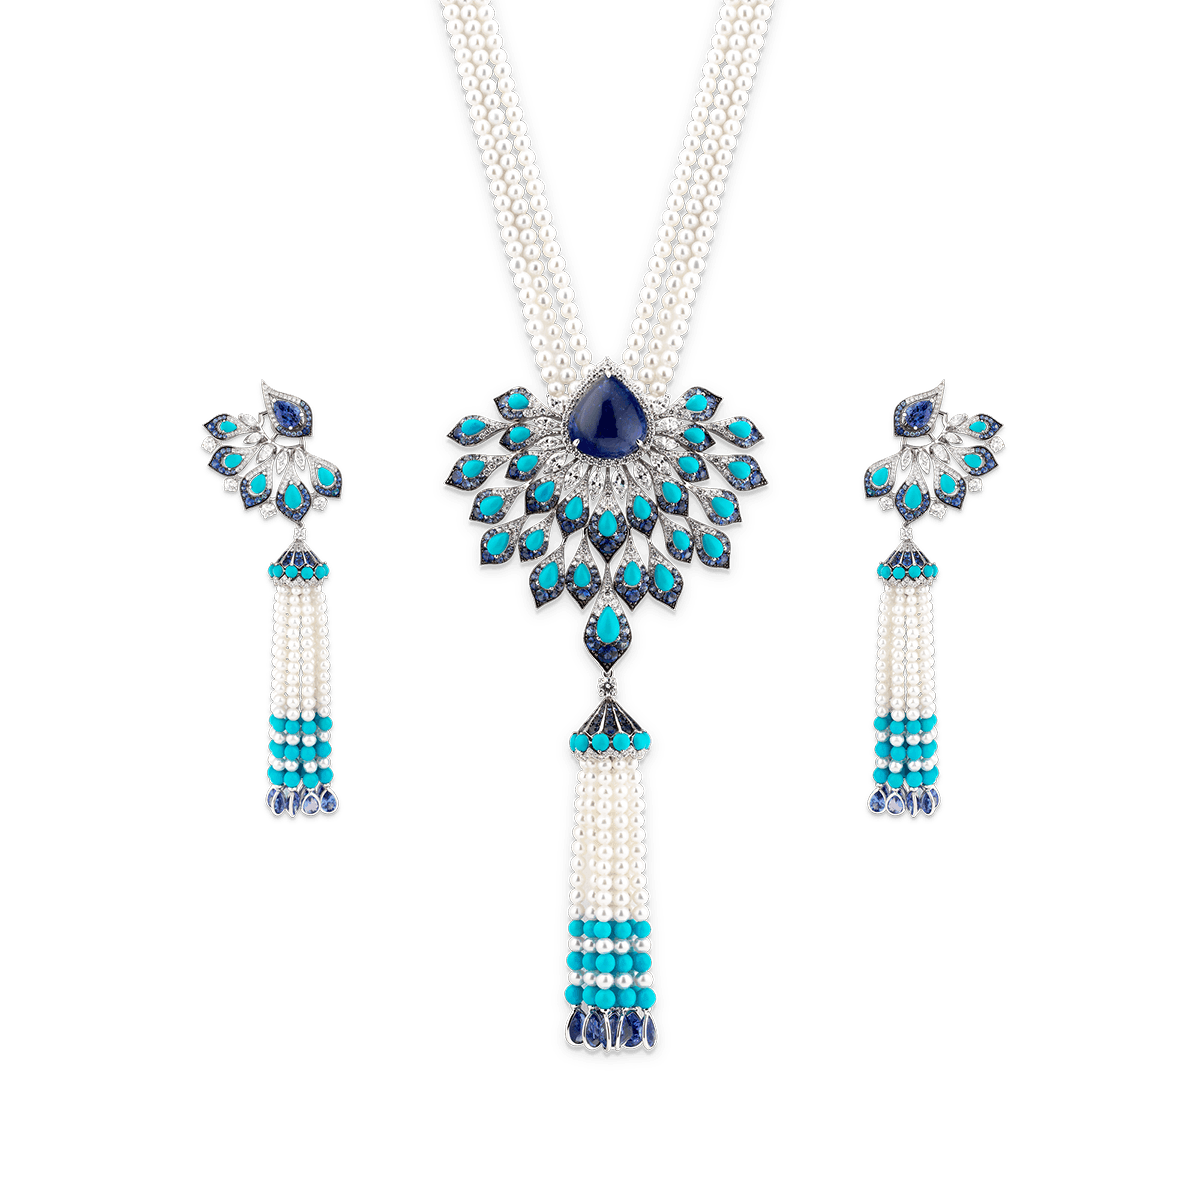 Sartoro PEACOCK Turquoise High Jewelry Set